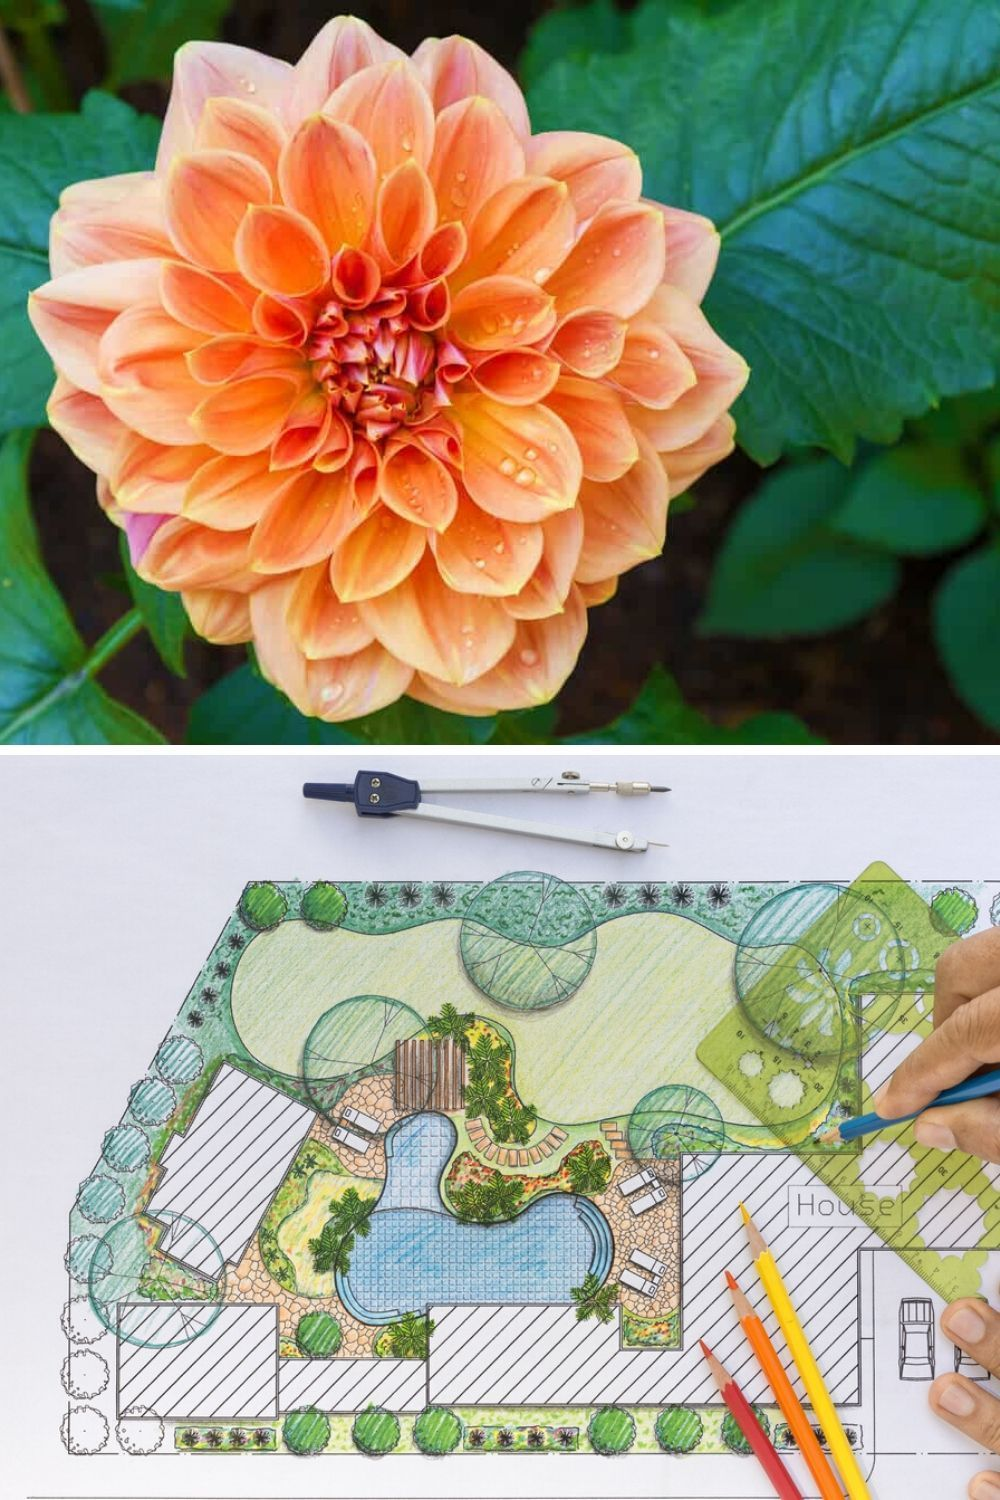 30 Different Types Of Orange Flowers A Z In 2020 Orange Flowers Types Of Oranges Dahlia Flower